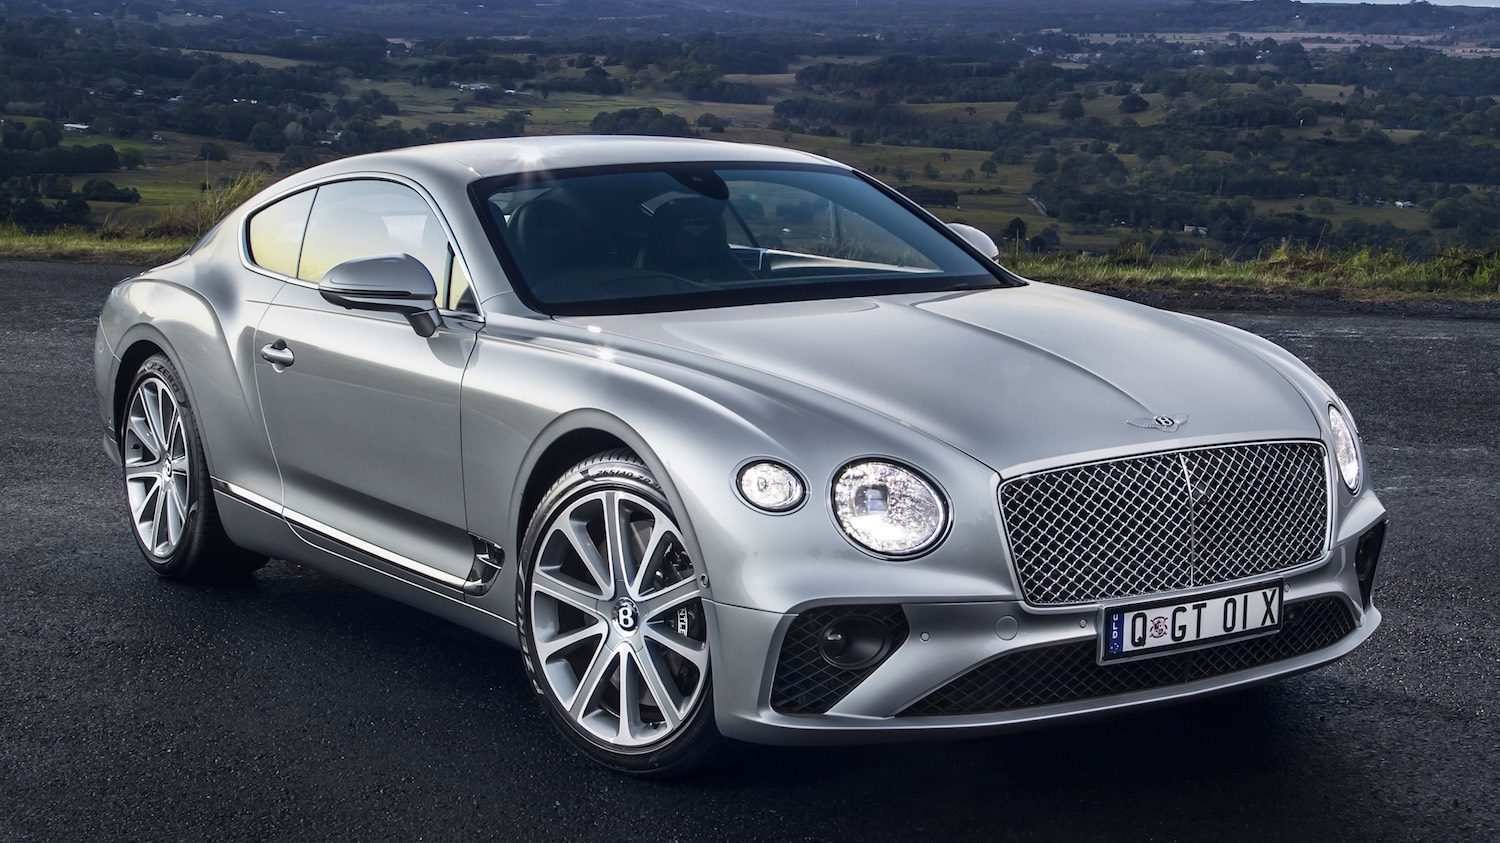 59 All New 2019 Bentley Gt Concept